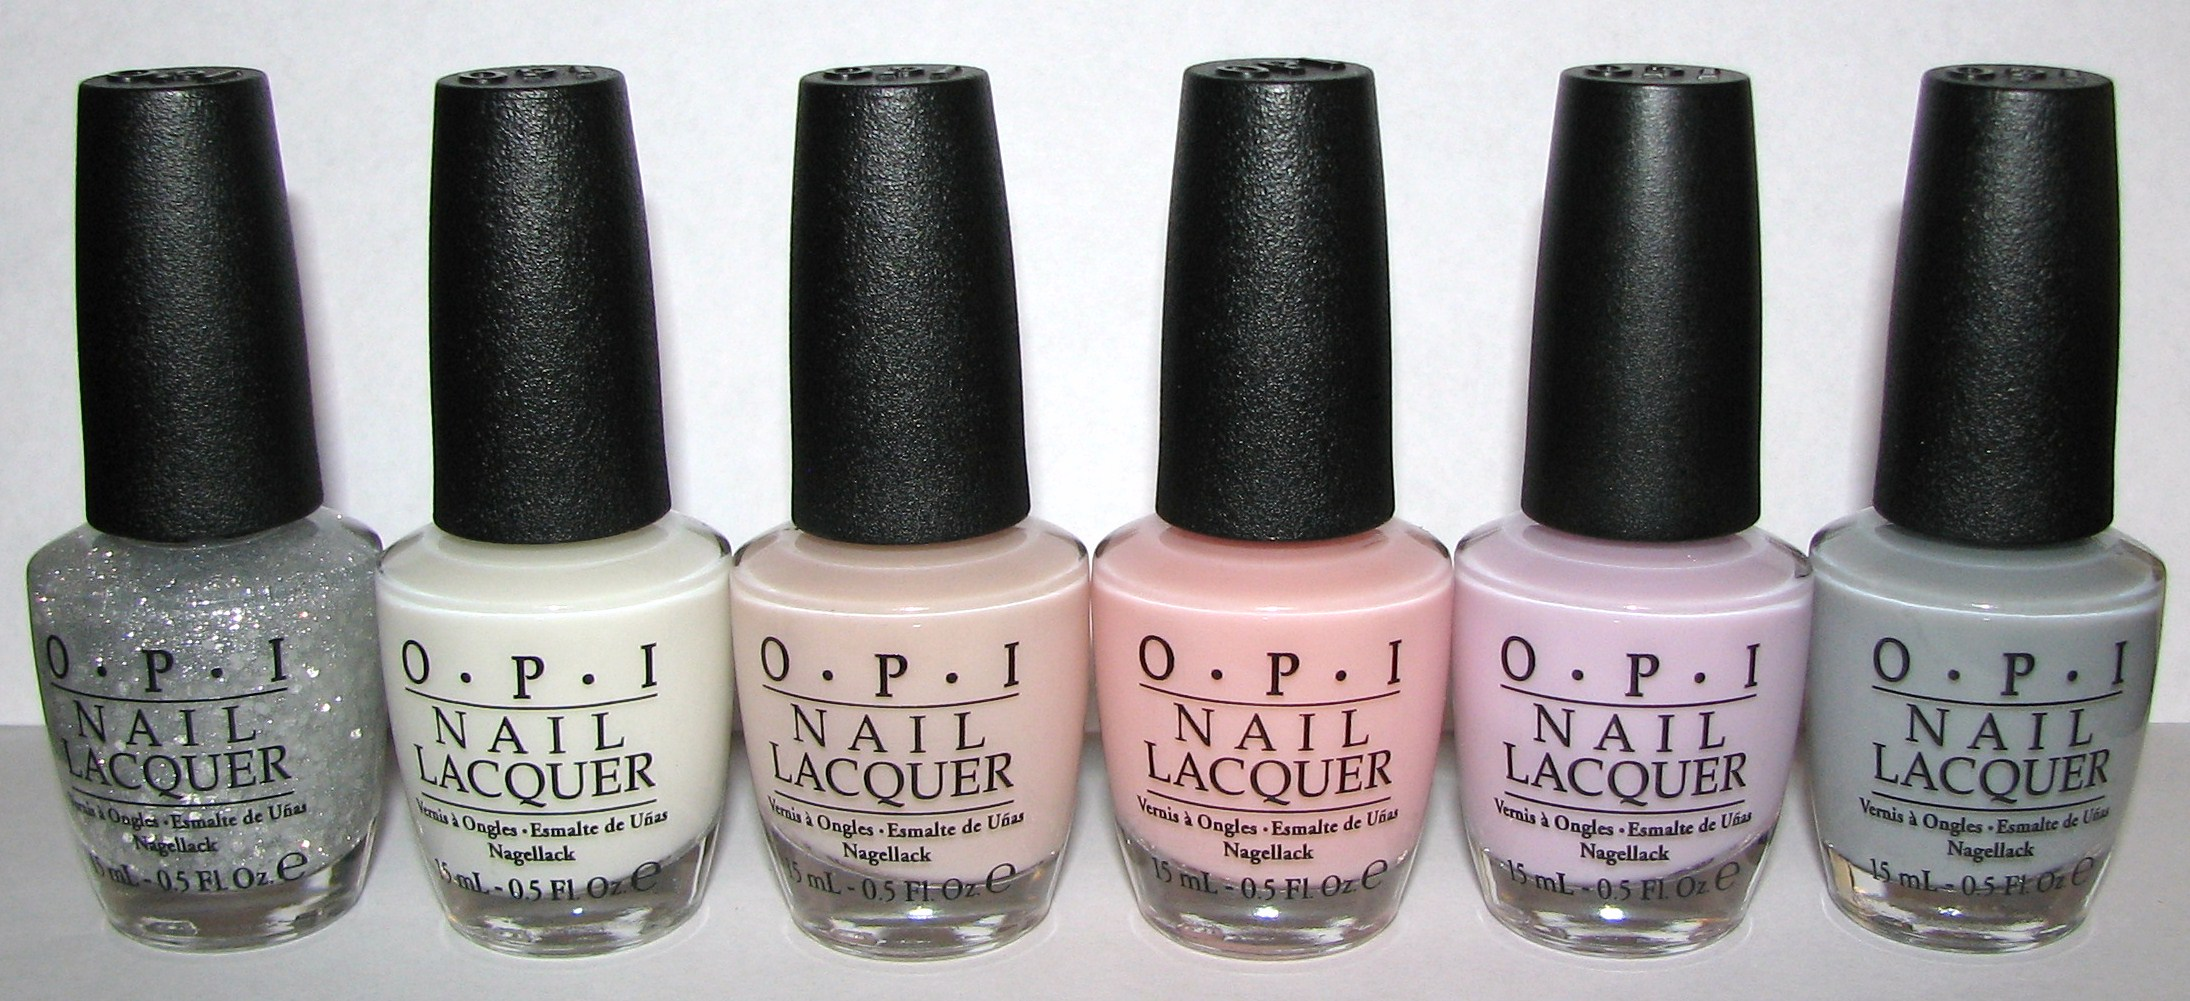 OPI New York City Ballet Nail Polish Collection Swatches and Review ...